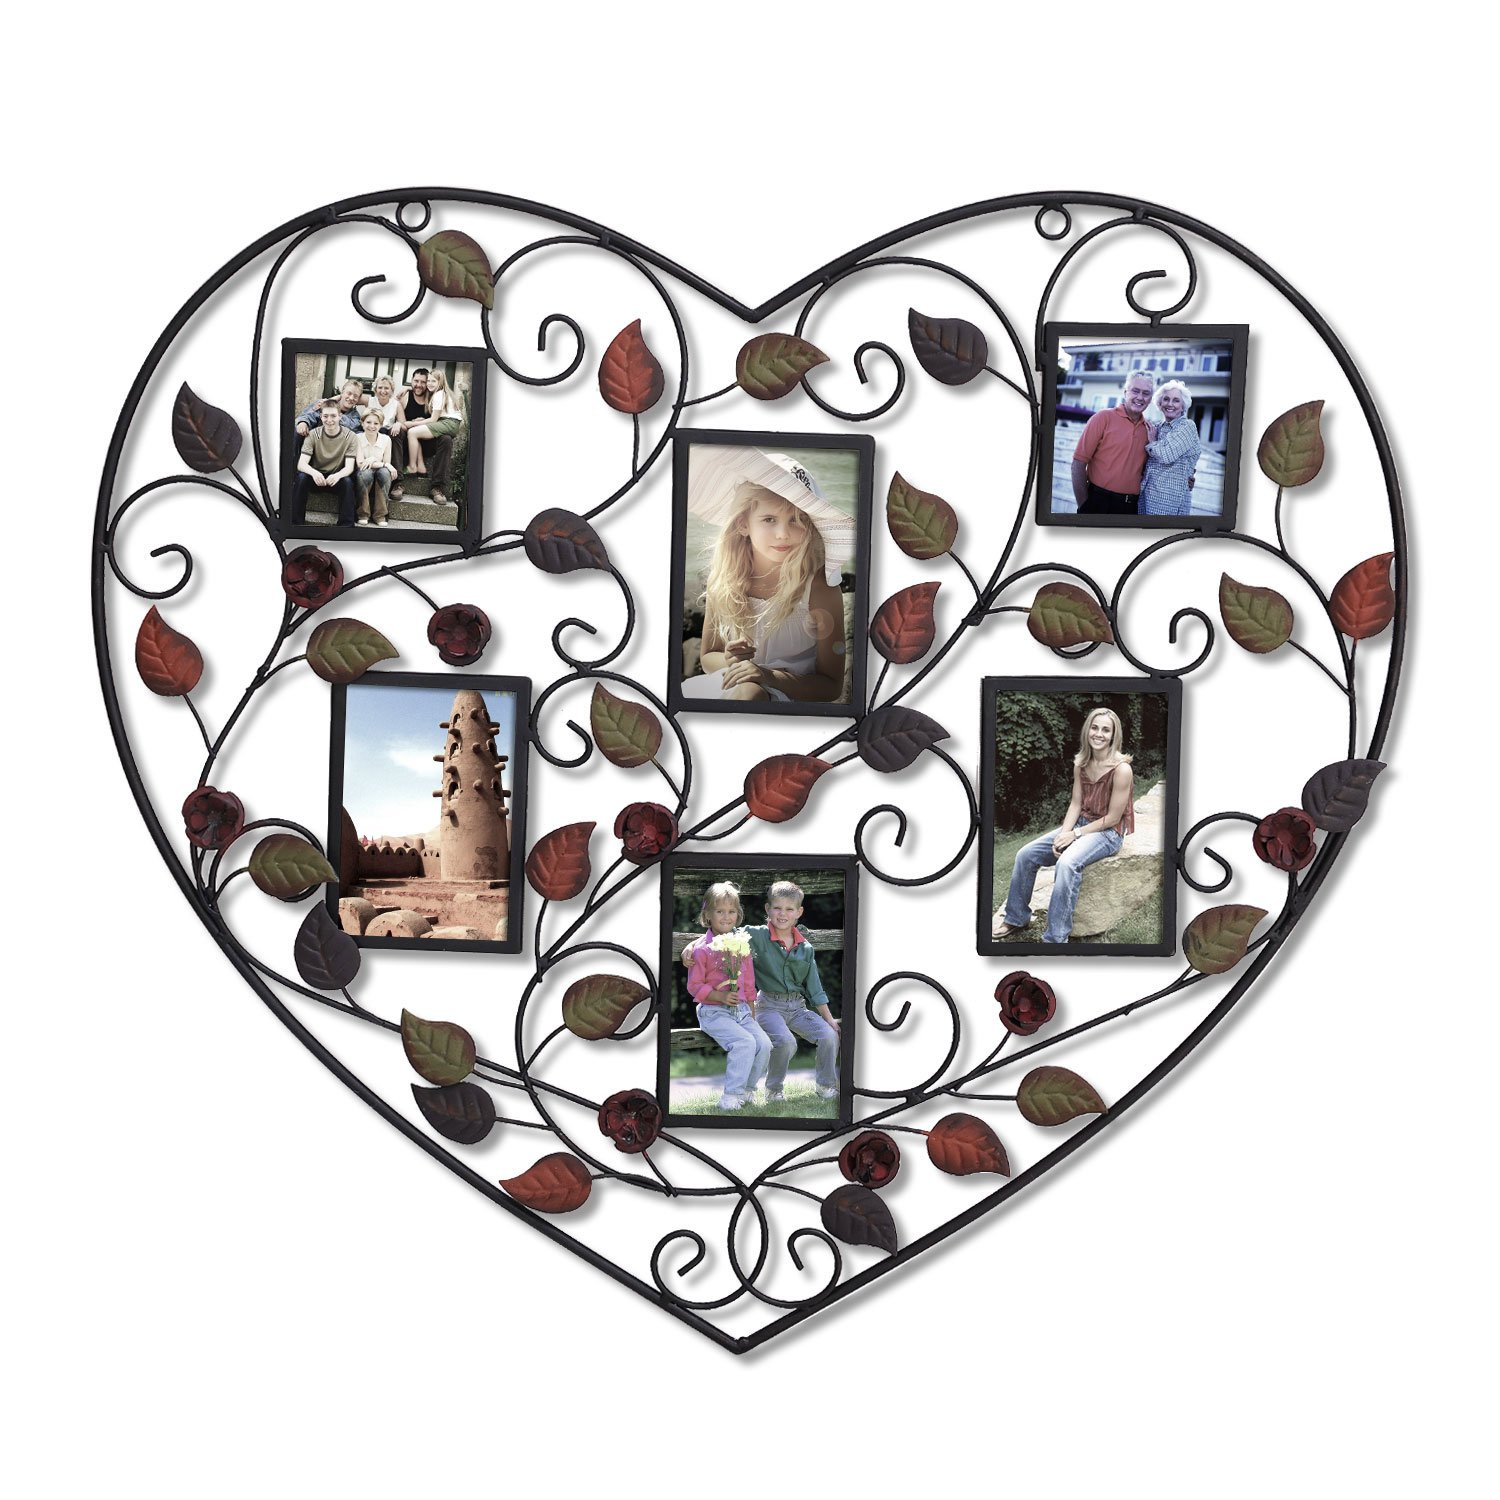 Adeco Decorative Bronze-Color Heart Shape Wall Hanging Collage Picture Photo Frame, 6 Openings, 4x4, 4x6 50pcs lot wire hanger fastener hanging photo picture frame quick easy clutch release nickel plate movable head ceiling